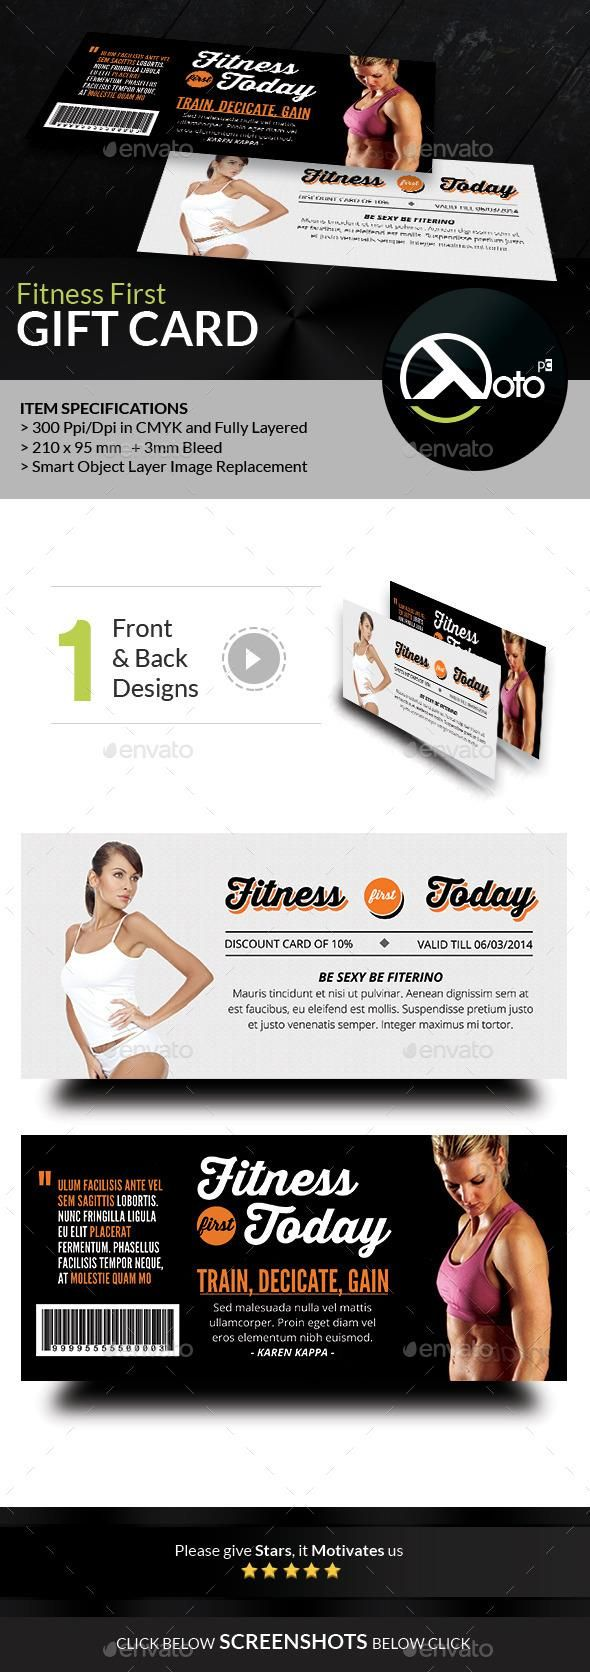 Fitness First Today Health Promotional Gift Voucher  #template #cards #print #invites